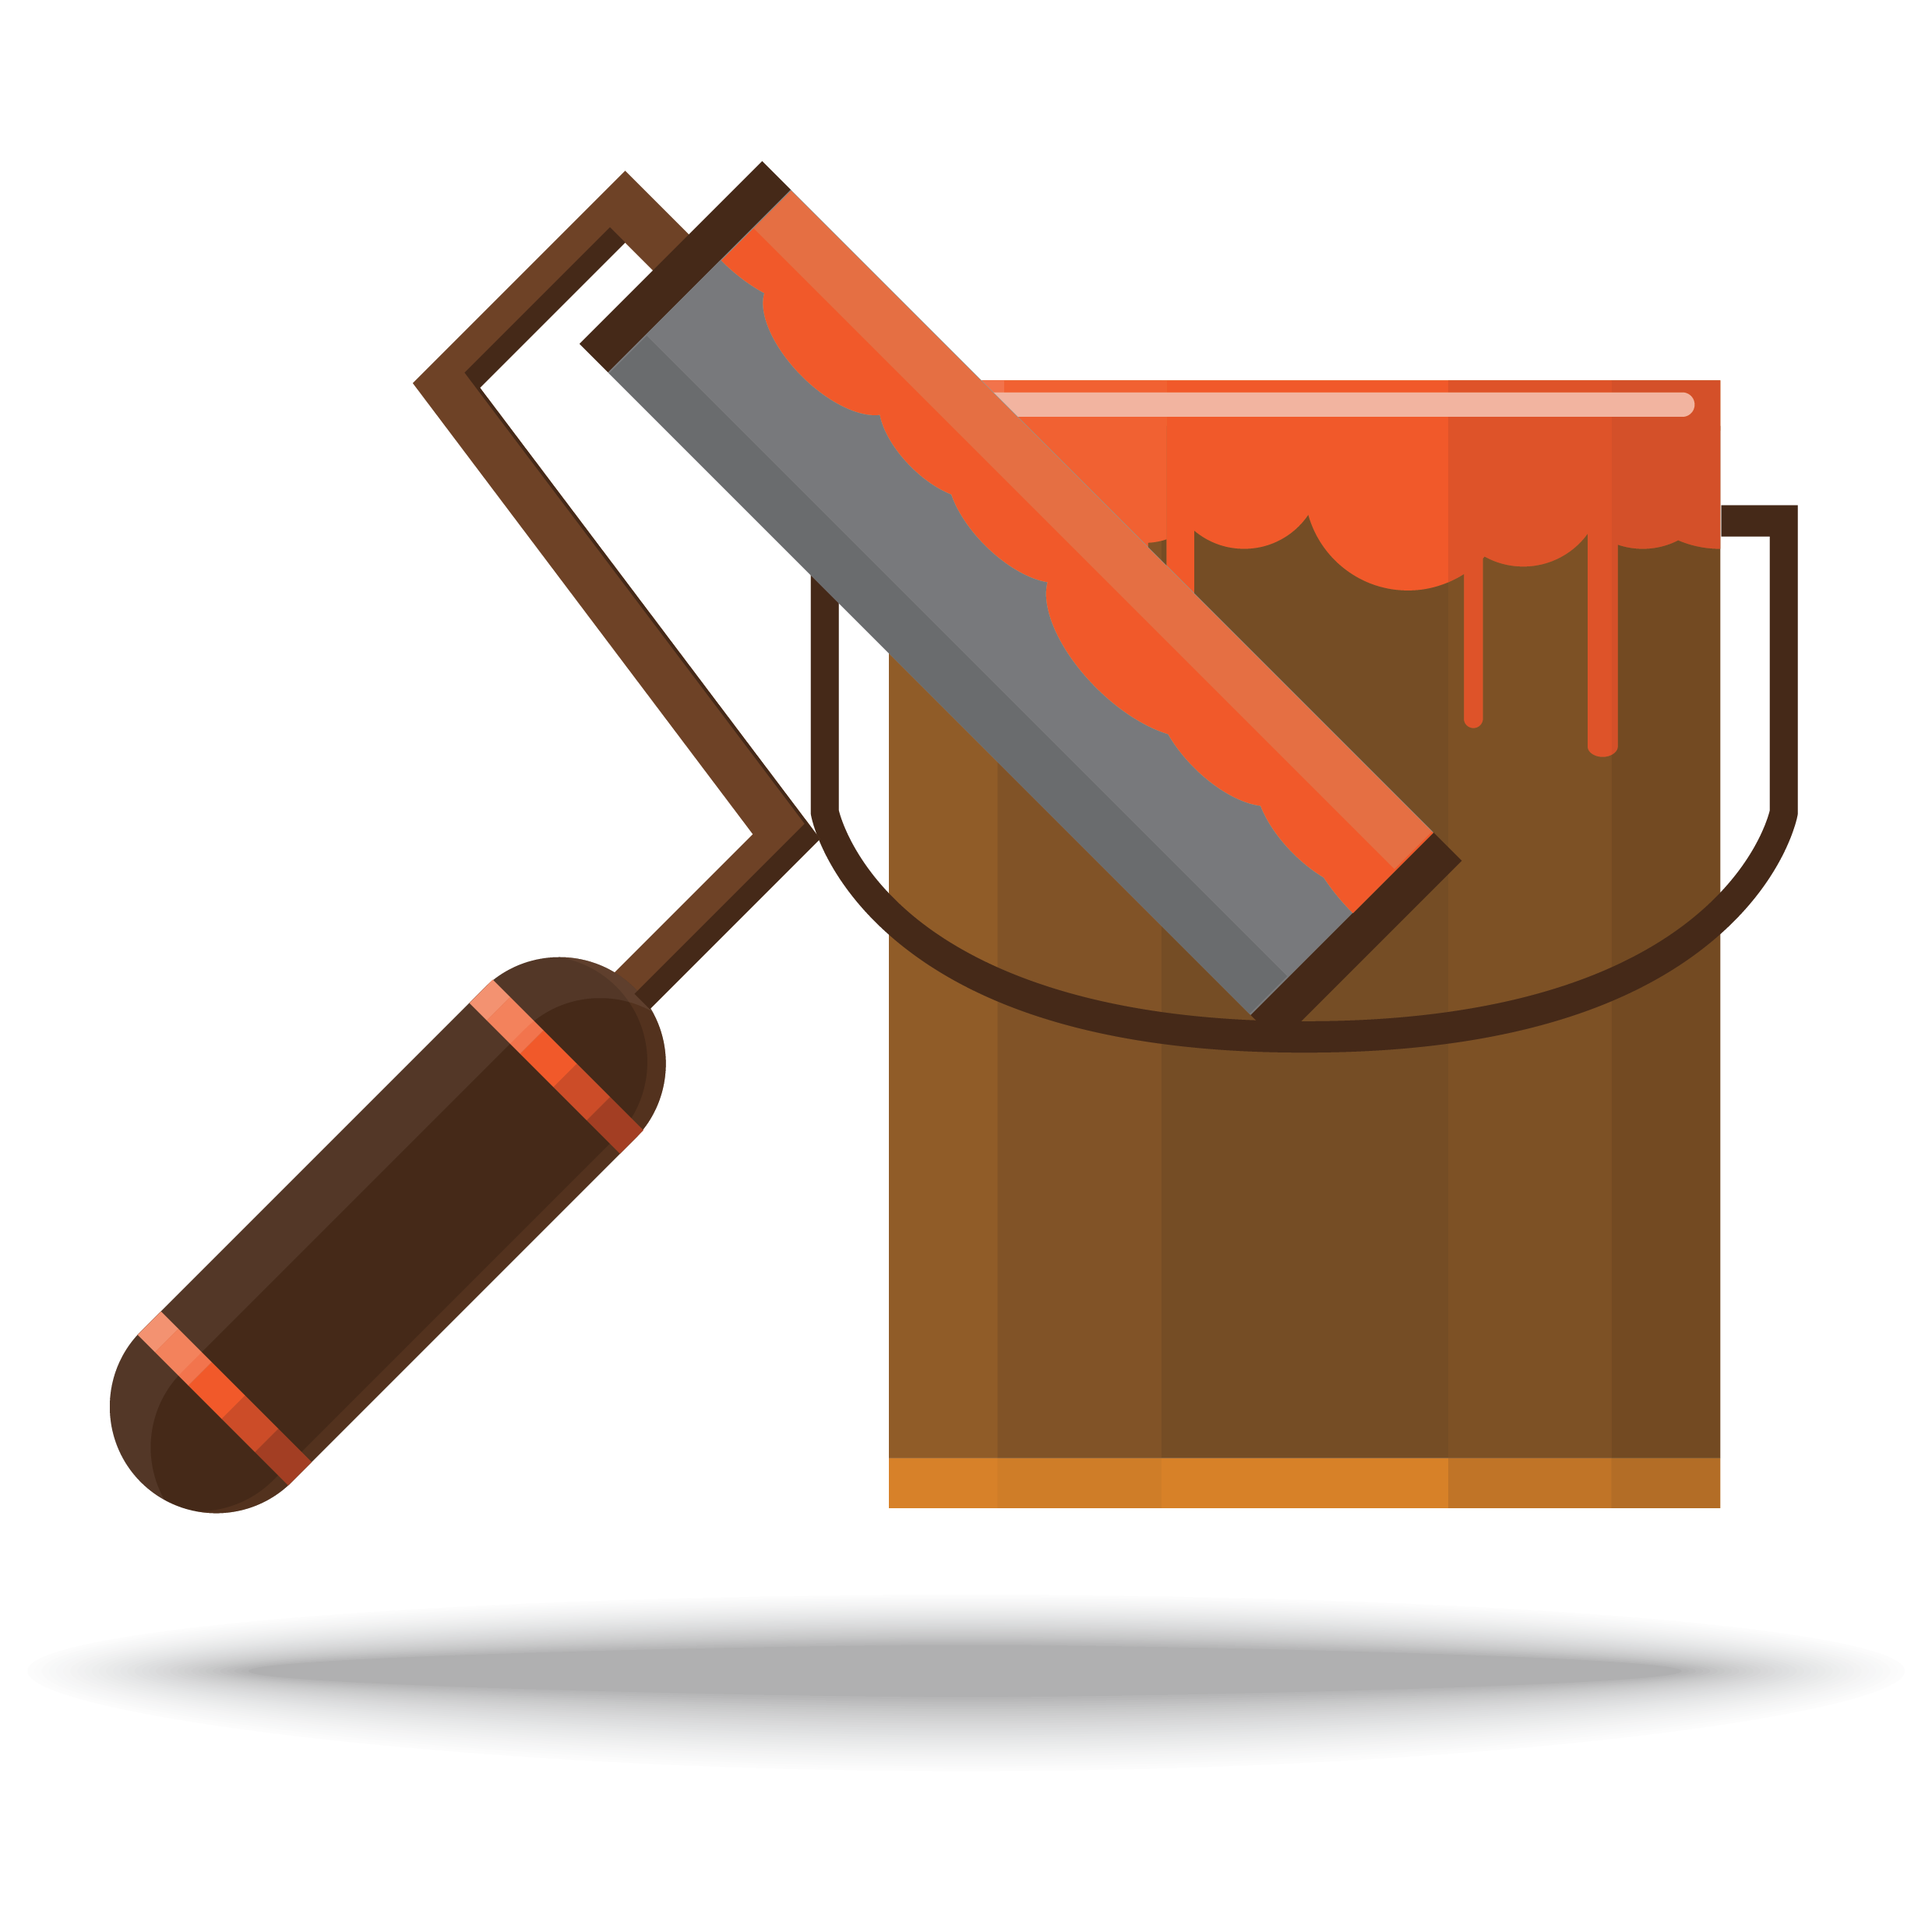 Contractor clipart business. Choosing a painting name